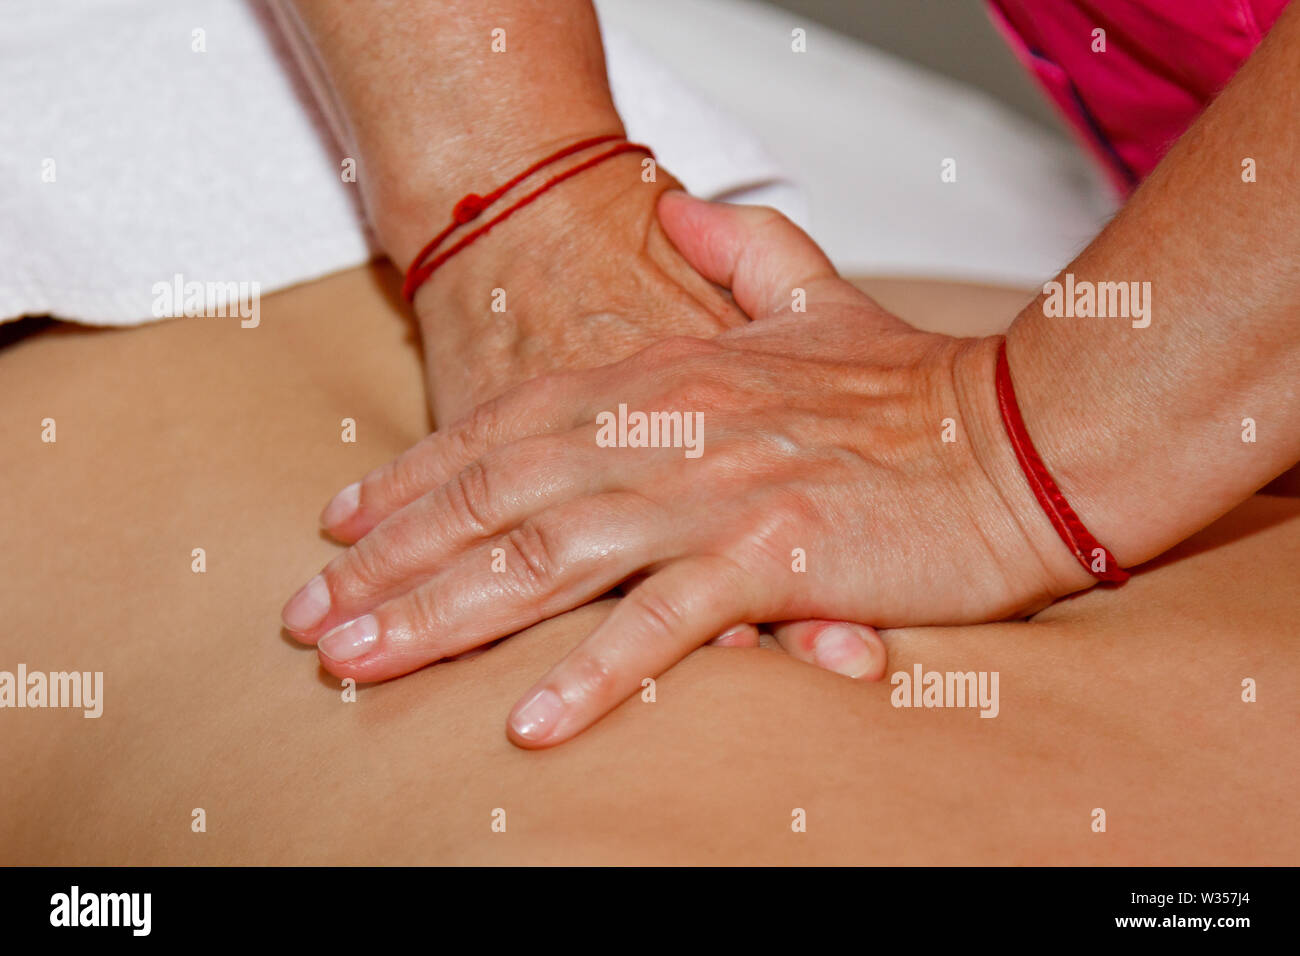 professional therapeutic massage of the back and neck. woman doctor massages girl athlete in a massage room. body and health care. procedure for recov - Stock Image